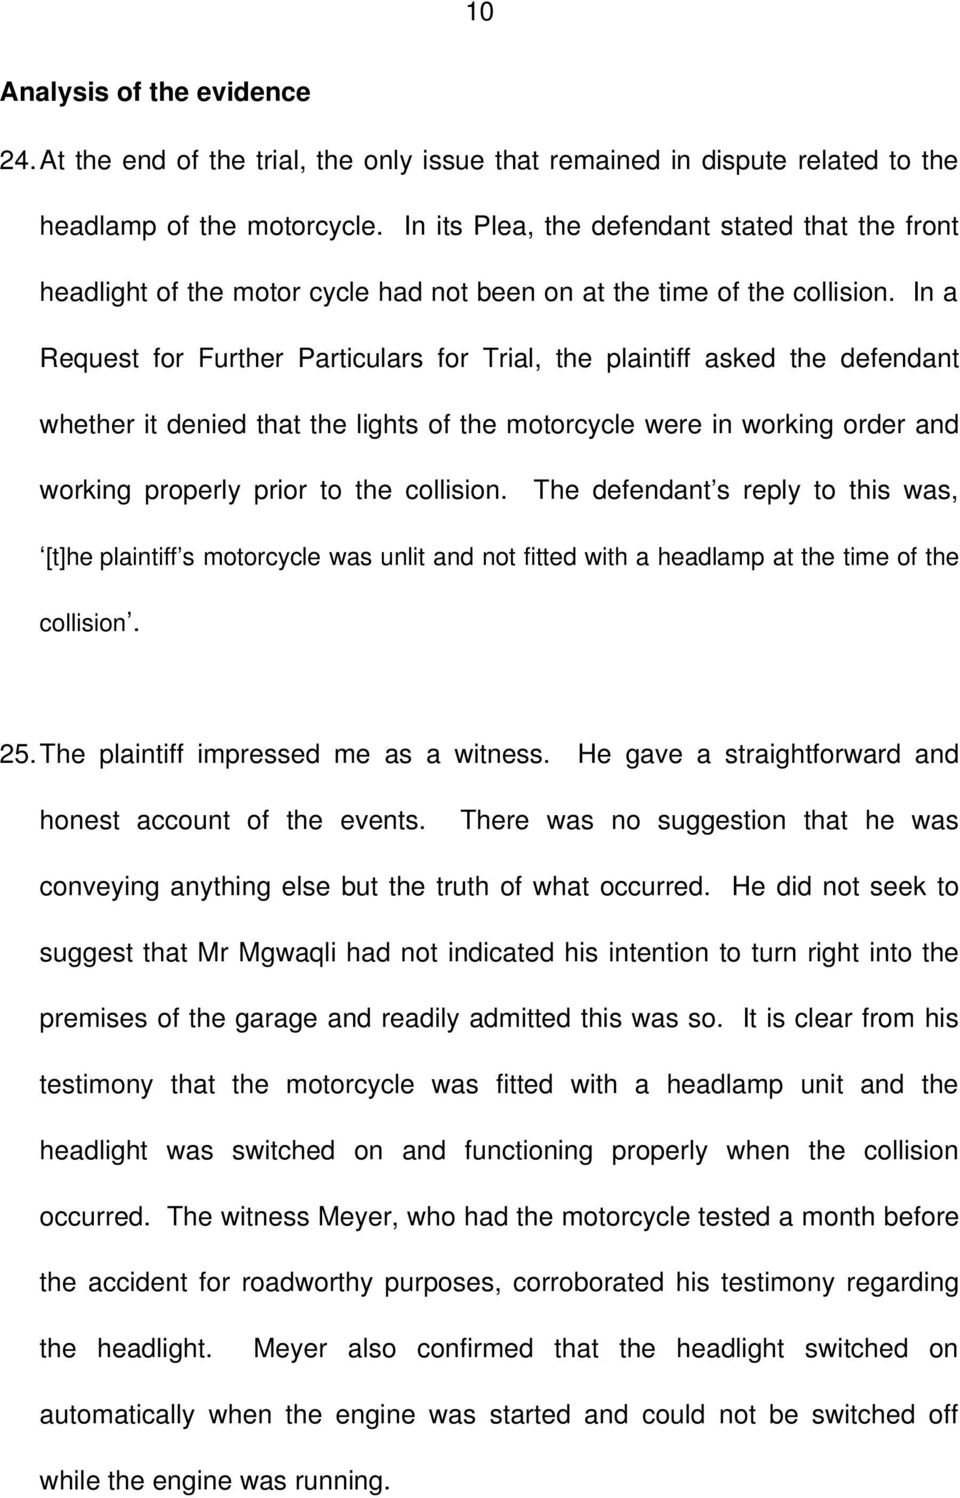 In a Request for Further Particulars for Trial, the plaintiff asked the defendant whether it denied that the lights of the motorcycle were in working order and working properly prior to the collision.